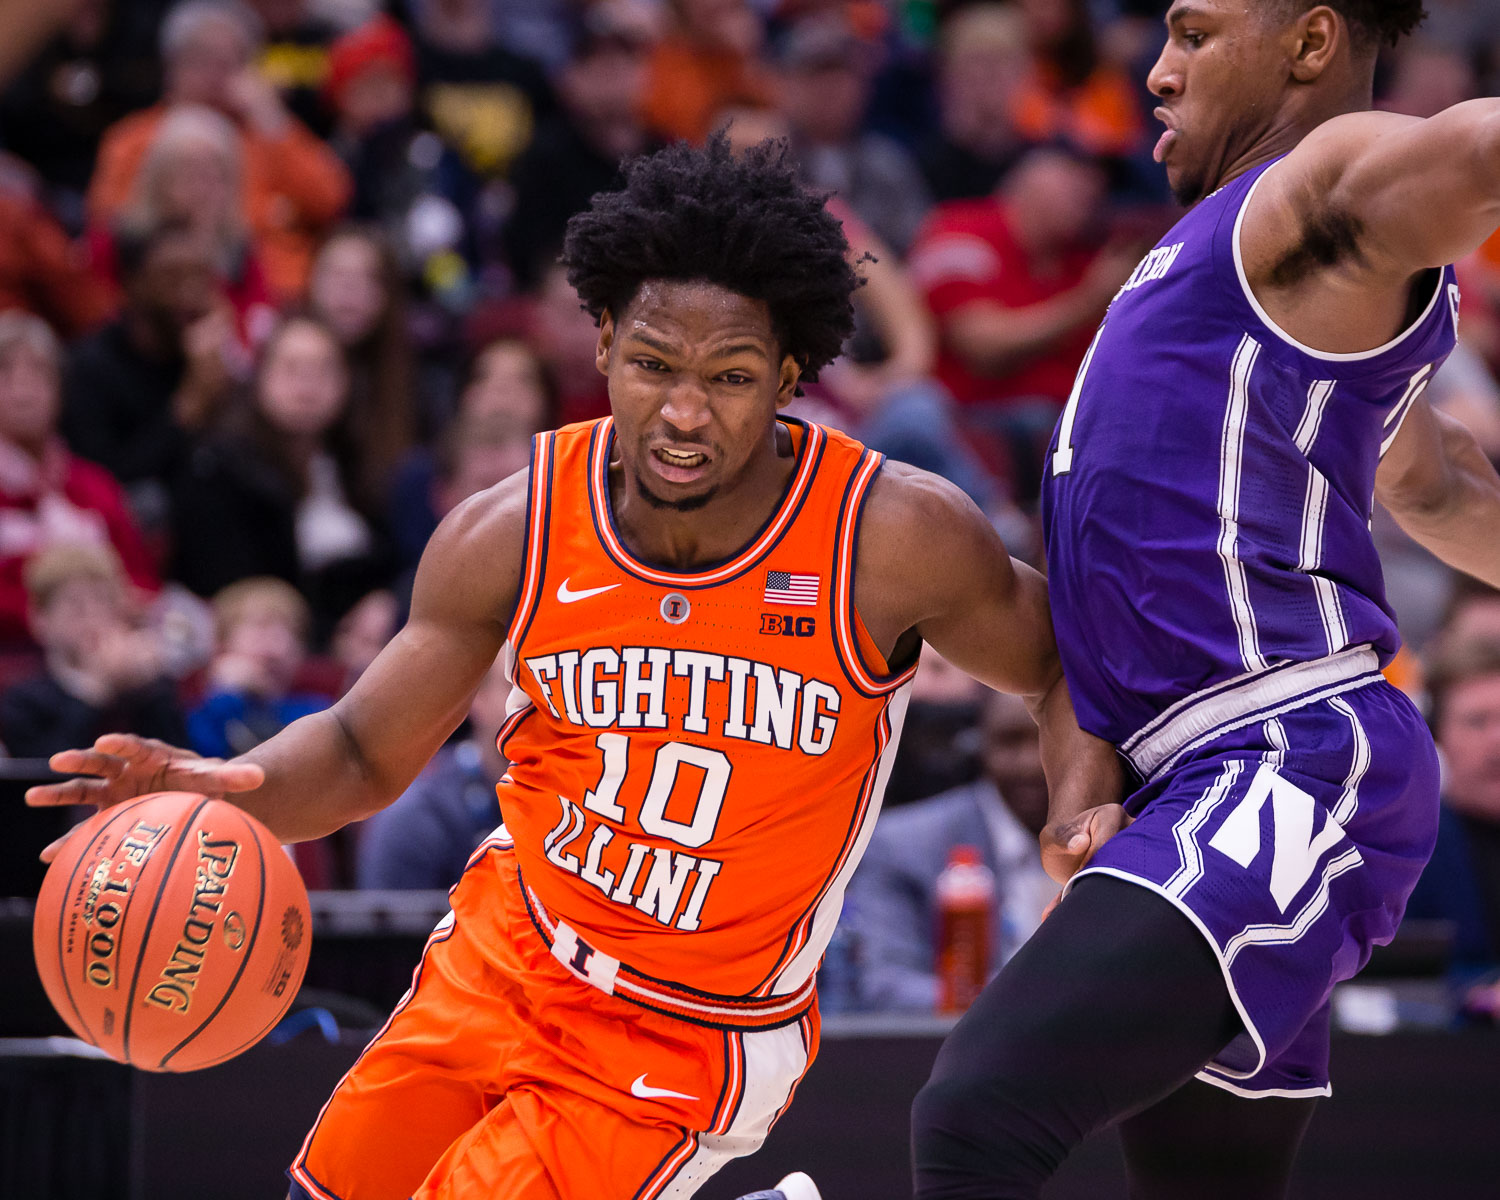 Illinois+guard+Andres+Feliz+drives+to+the+basket+during+the+game+against+Northwestern+in+the+first+round+of+the+Big+Ten+Tournament+at+the+United+Center+on+Wednesday.